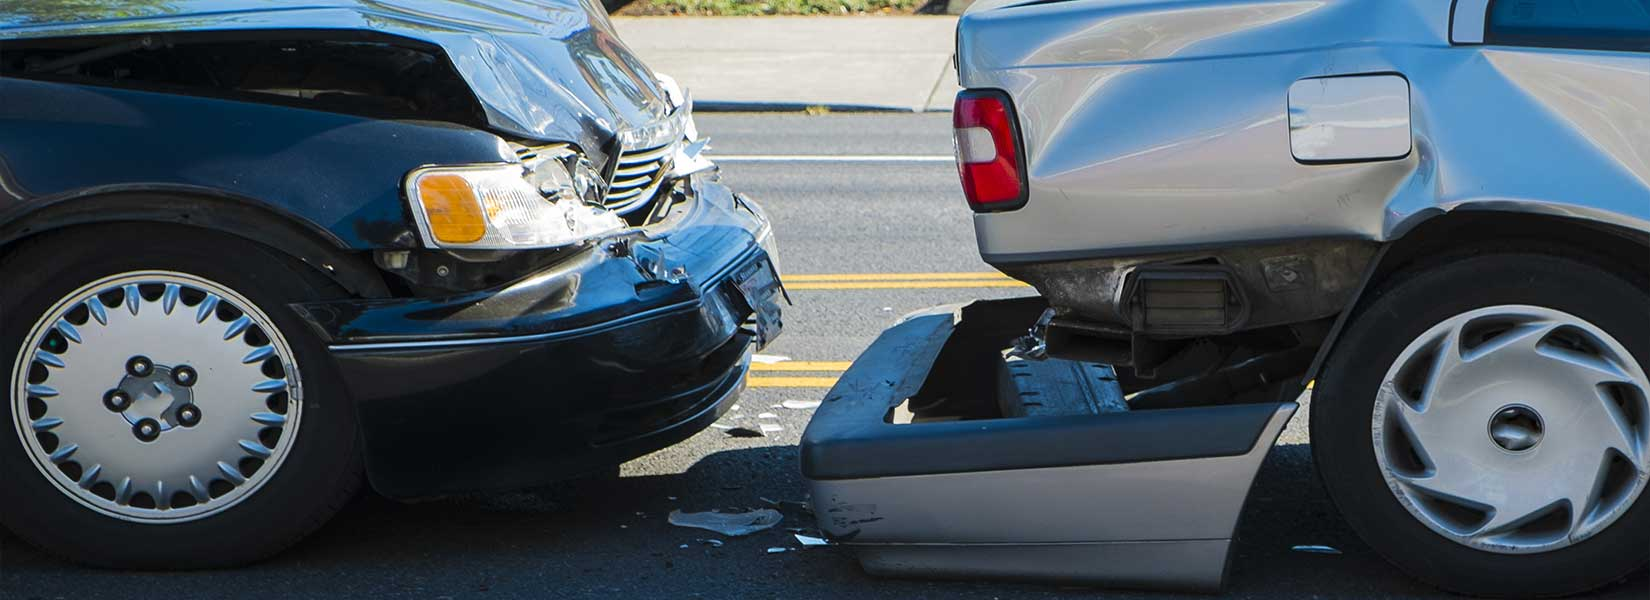 Halloween 2020 All Injuries An Atlanta Auto Collision Lawyer Explores Halloween Driving In